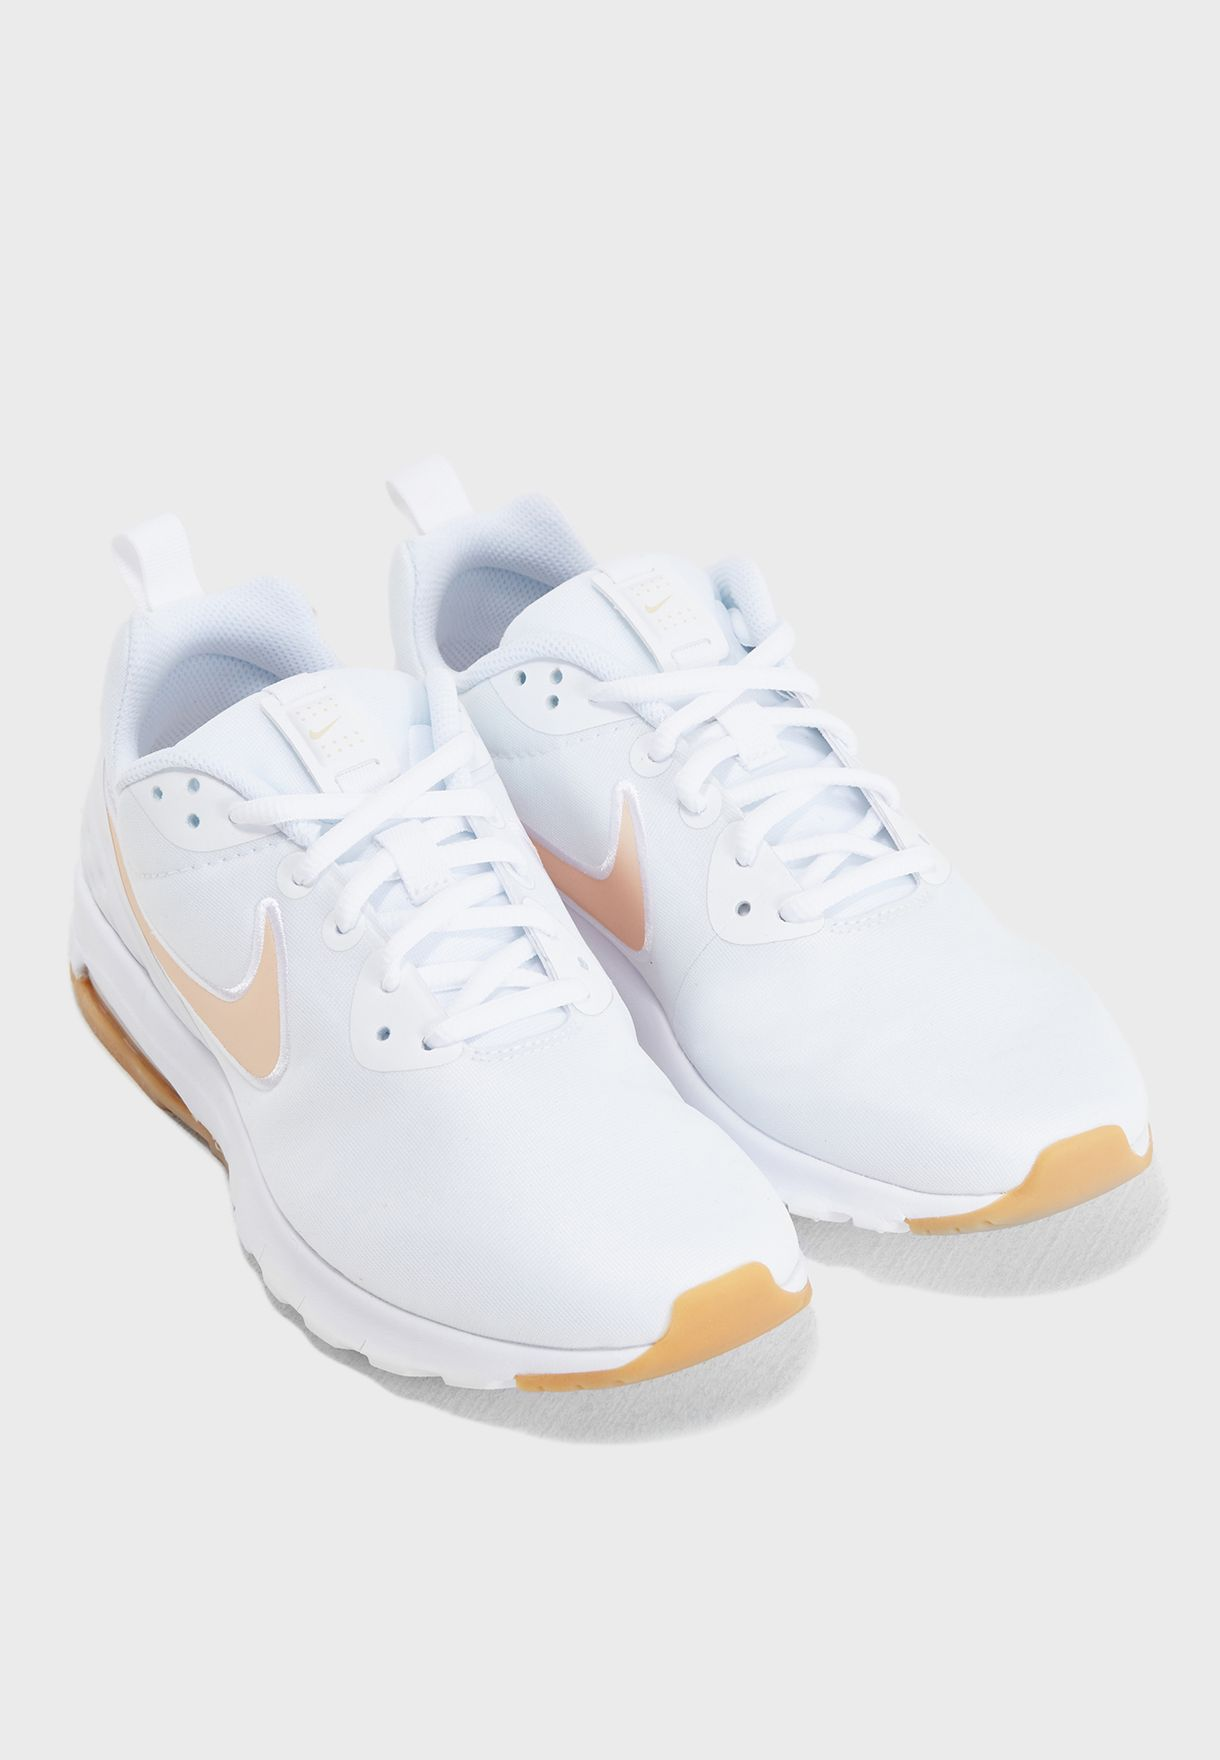 824bf4c2d0 Shop Nike white Air Max Motion LW SE 844895-102 for Women in UAE ...